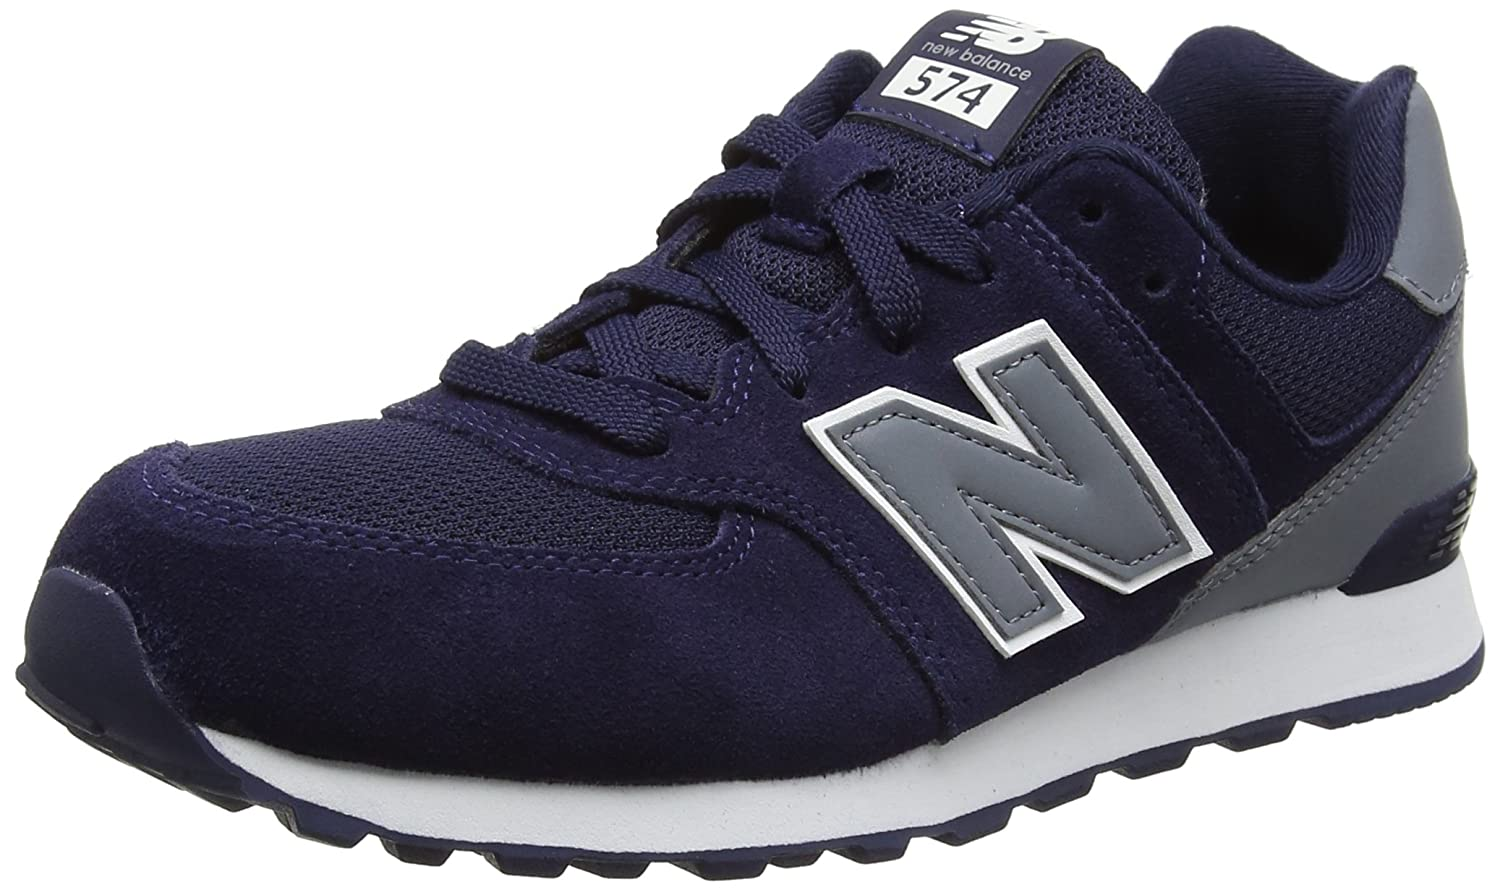 New Balance Gc574v1g, Baskets Mixte Enfant, Bleu (Navy), 39 EU